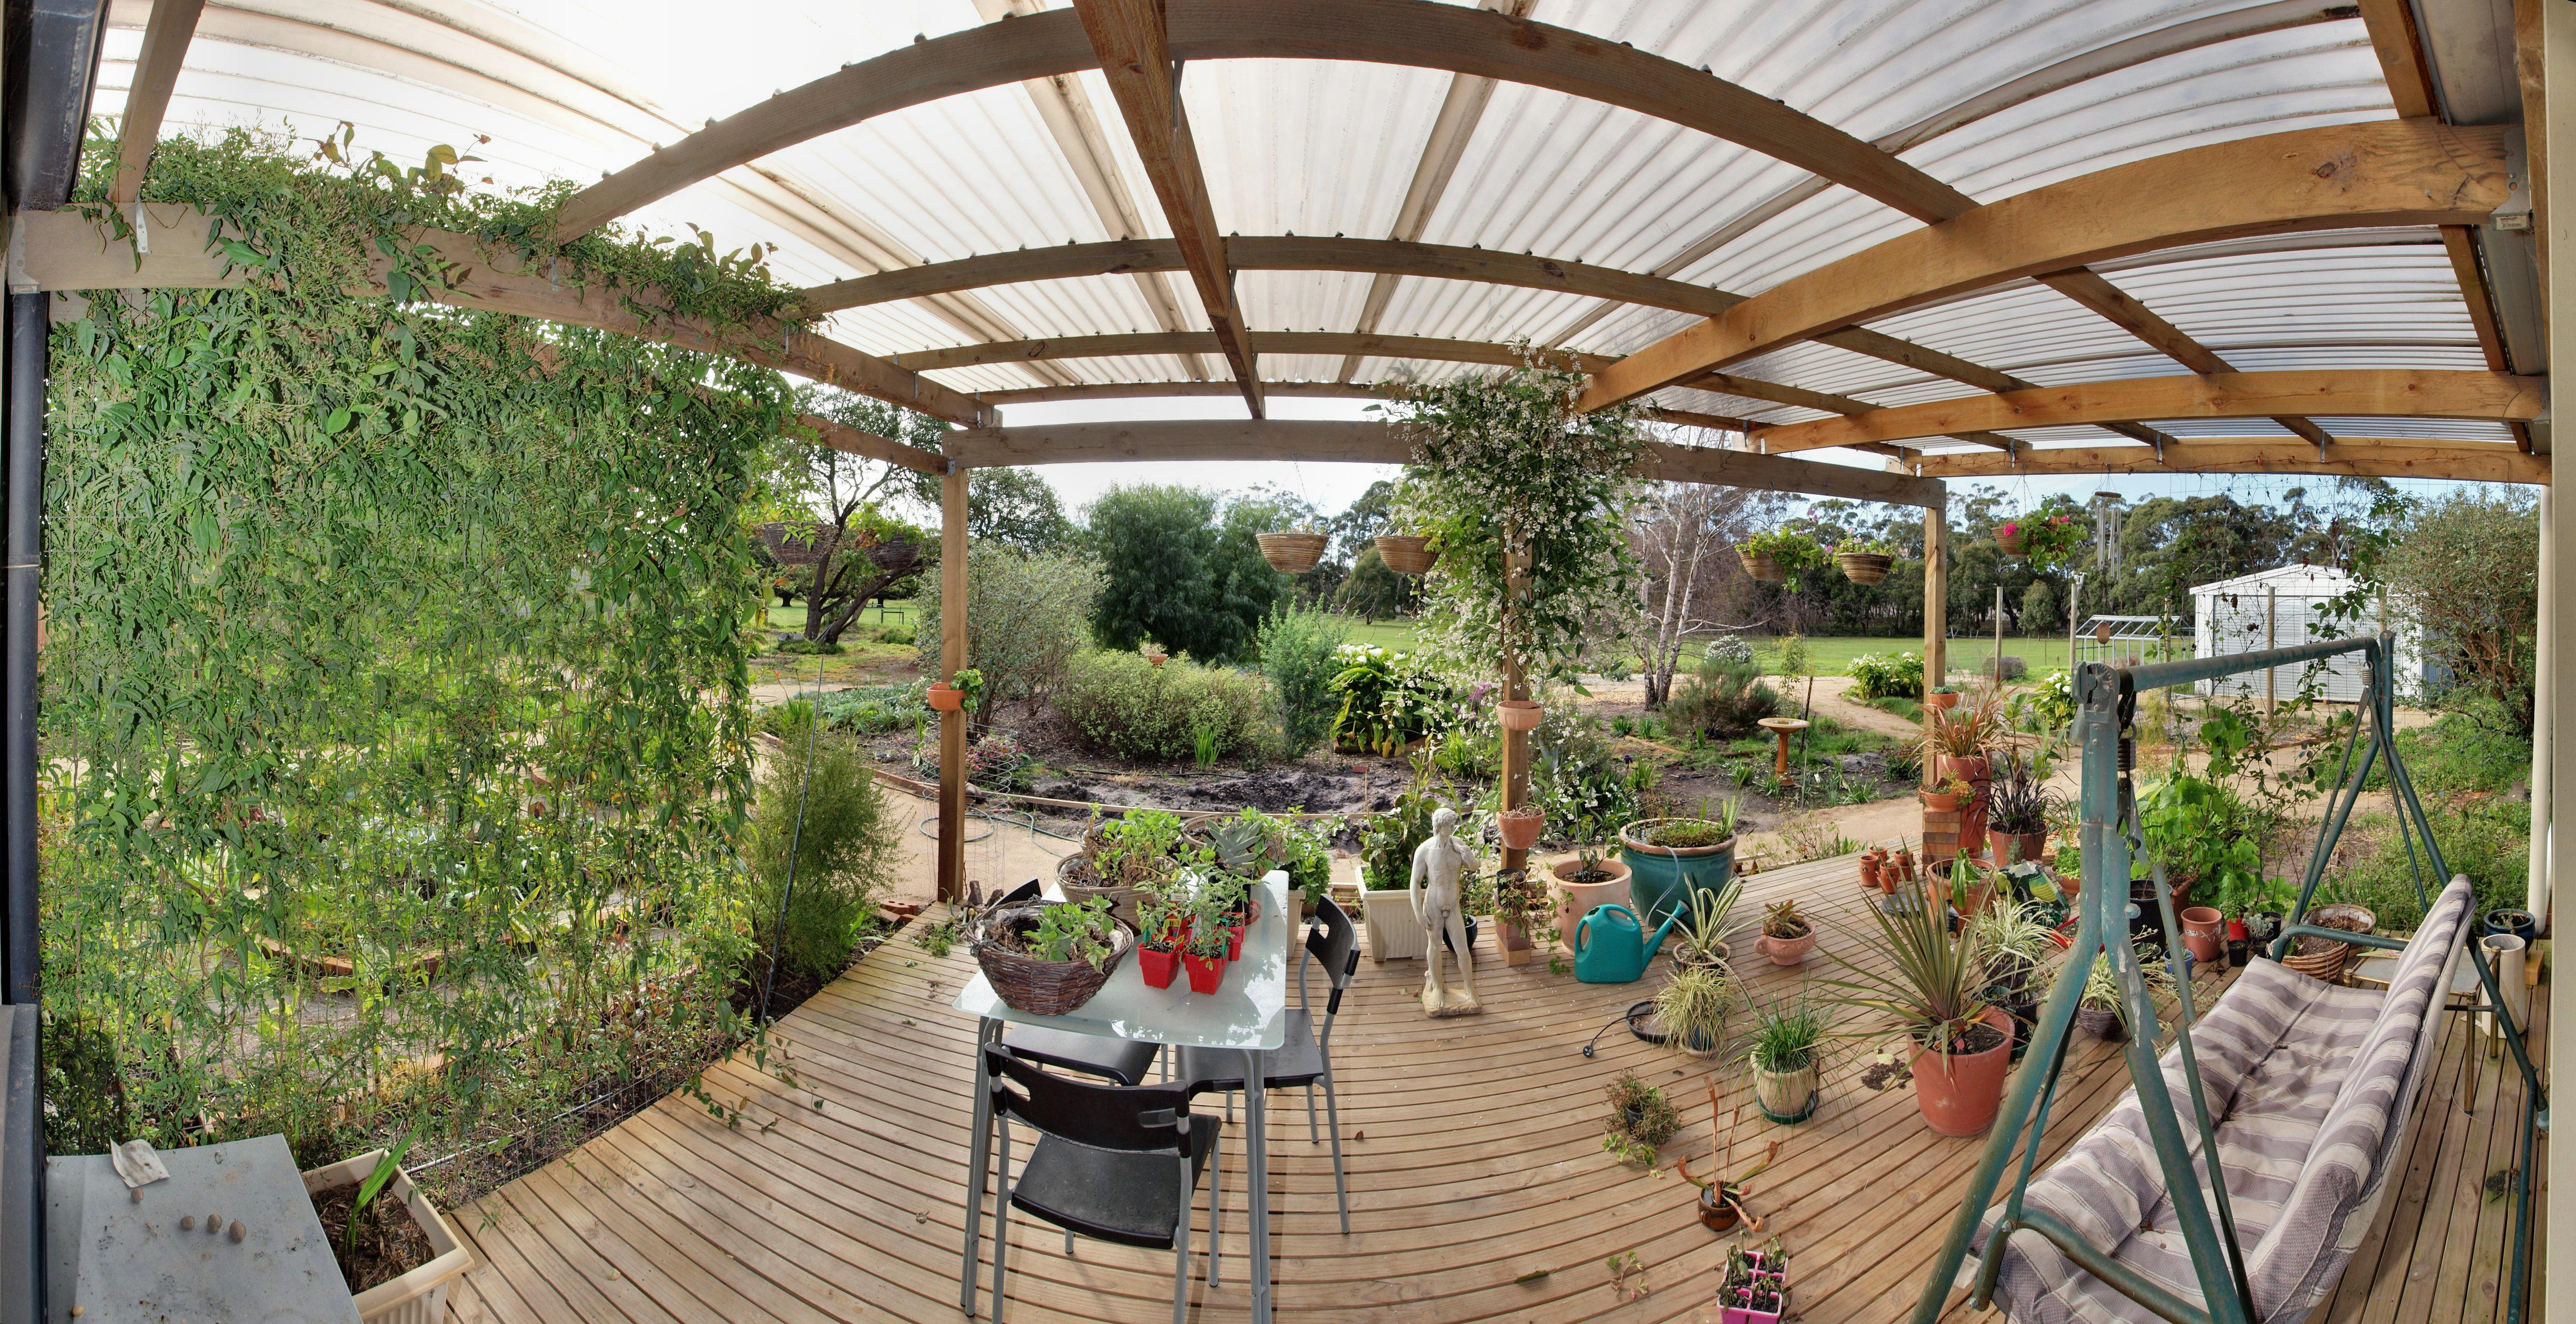 This should be verandah-panorama.jpeg.  Is it missing?